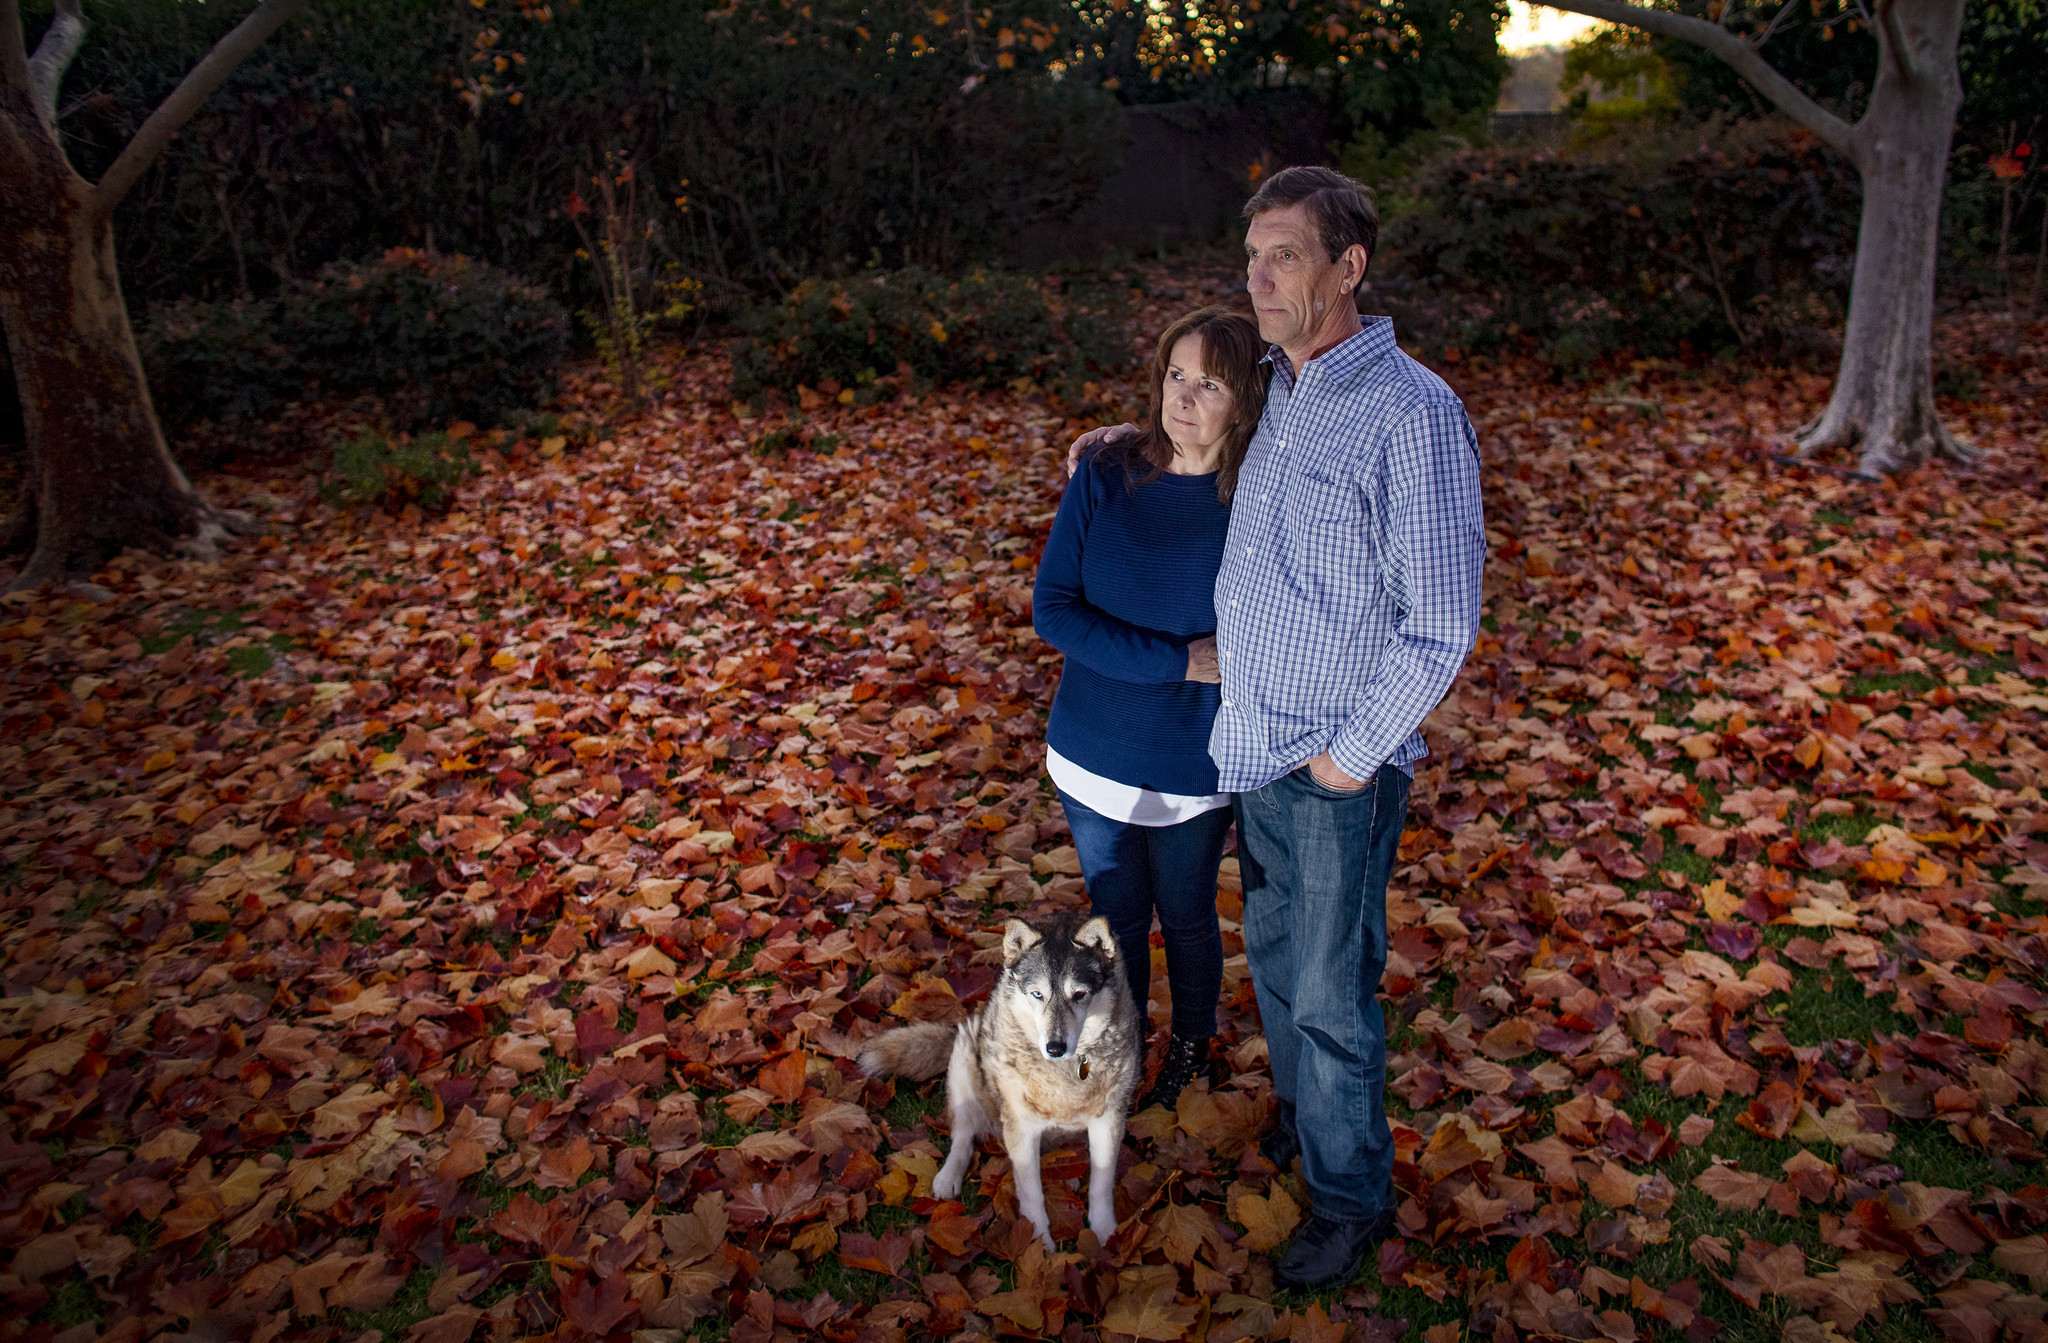 David Demaree with his wife and dog